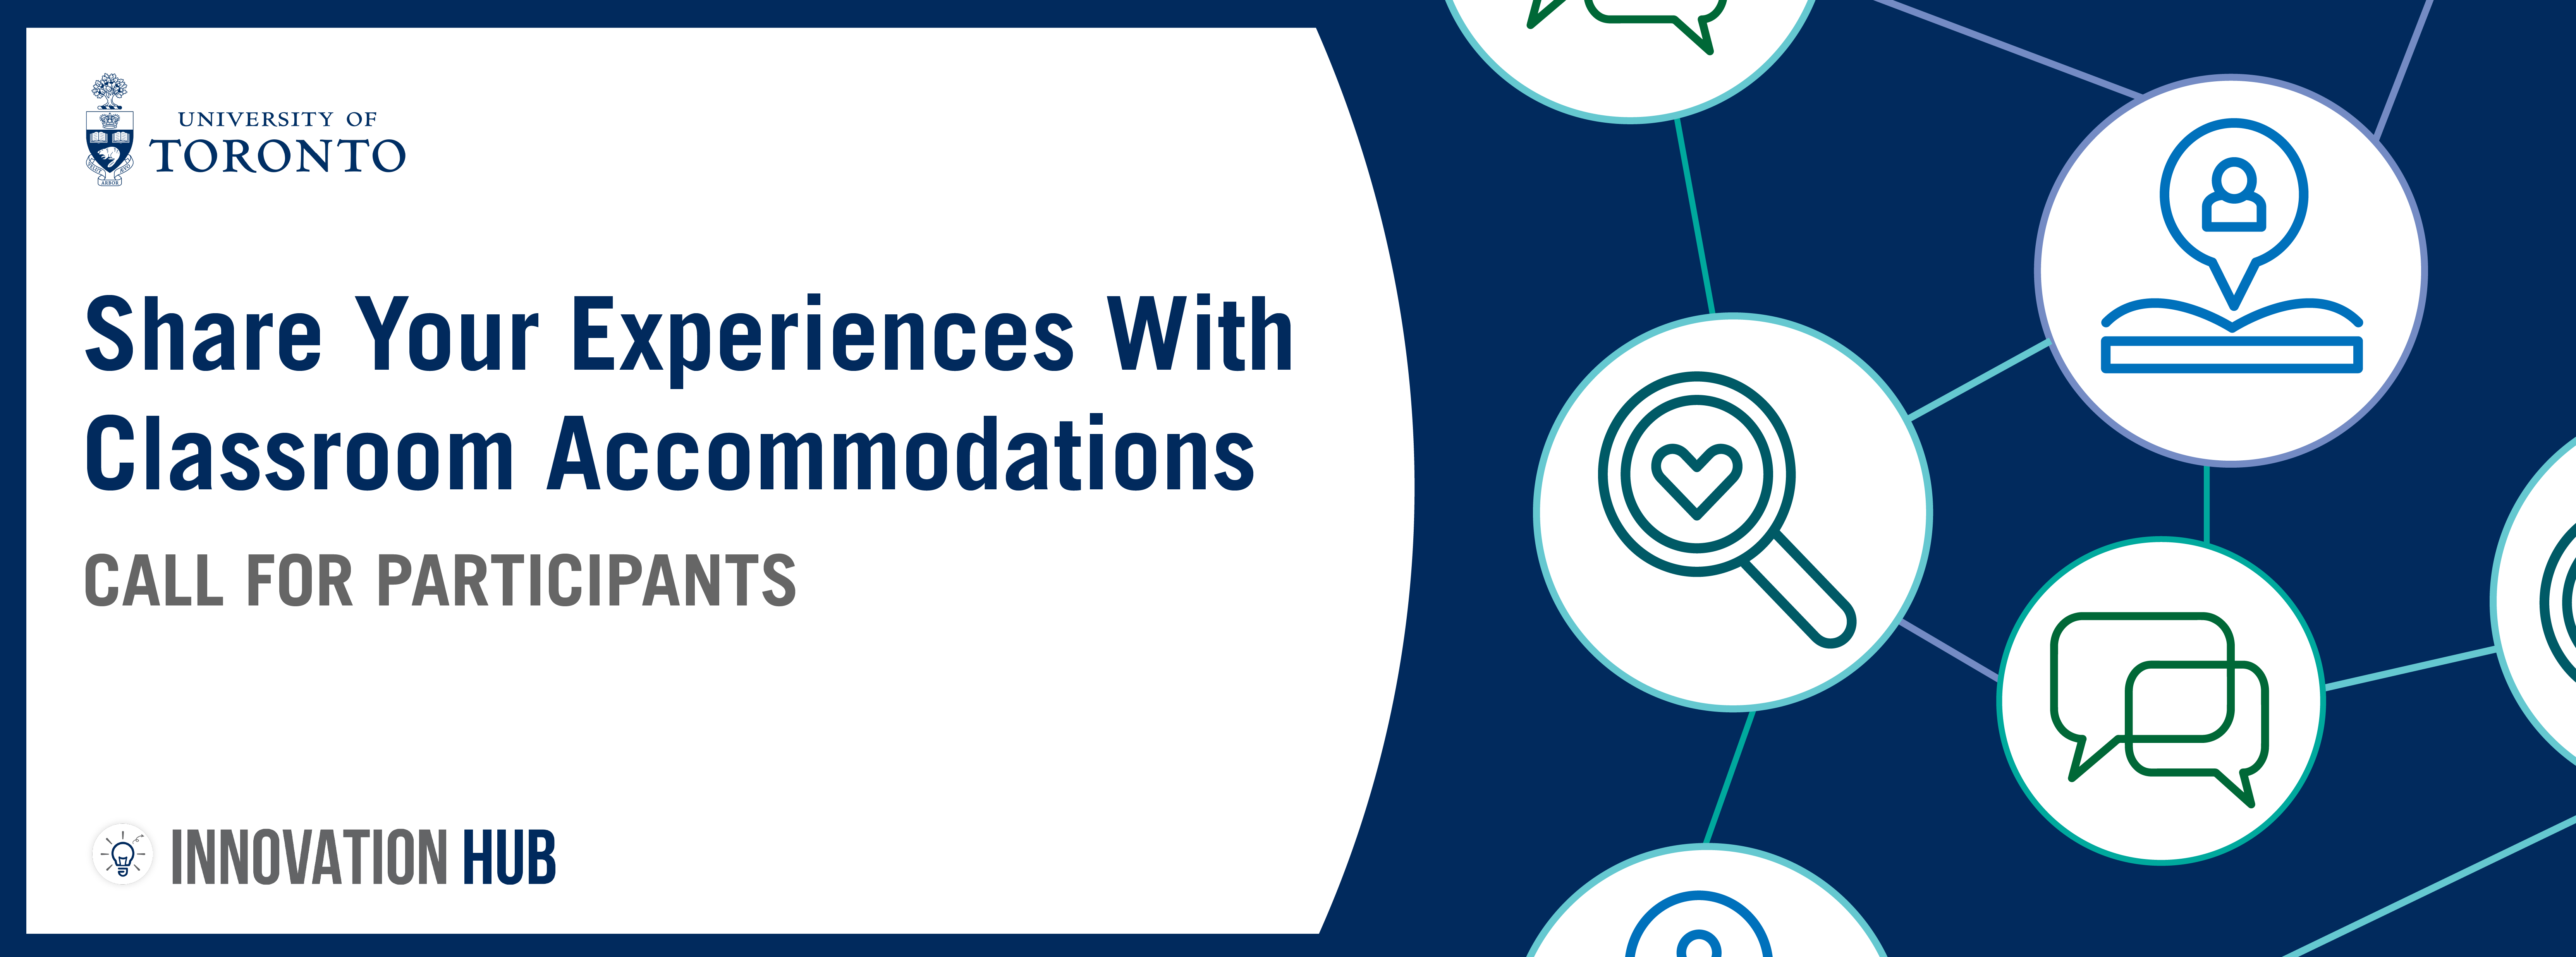 A blue and white banner that reads 'Share Your Experiences With Classroom Accommodation' with icons that represent support, learning and conversation.